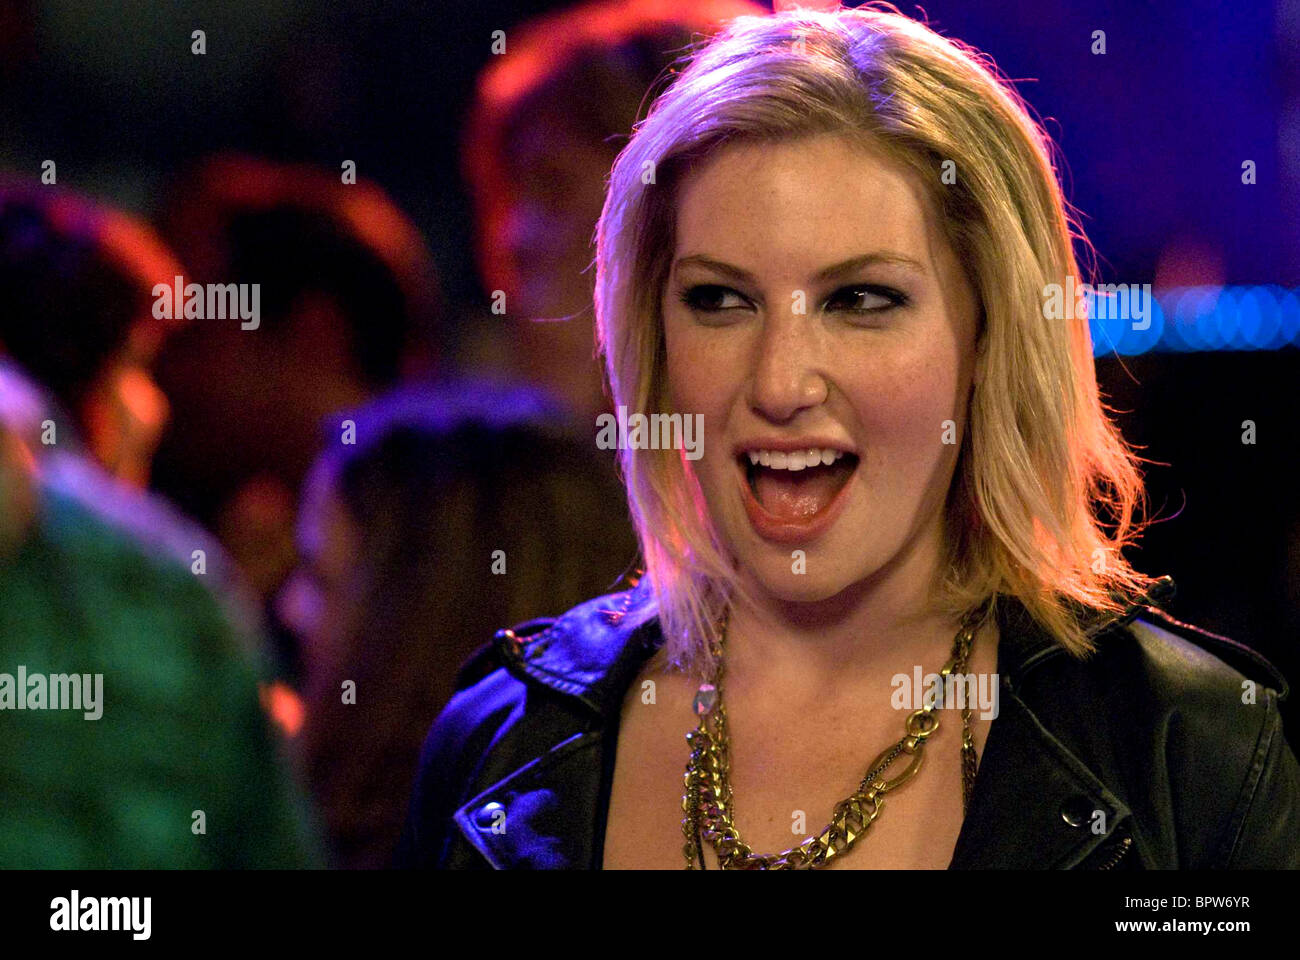 ARI GRAYNOR NICK AND NORAH'S INFINITE PLAYLIST (2008) - Stock Image